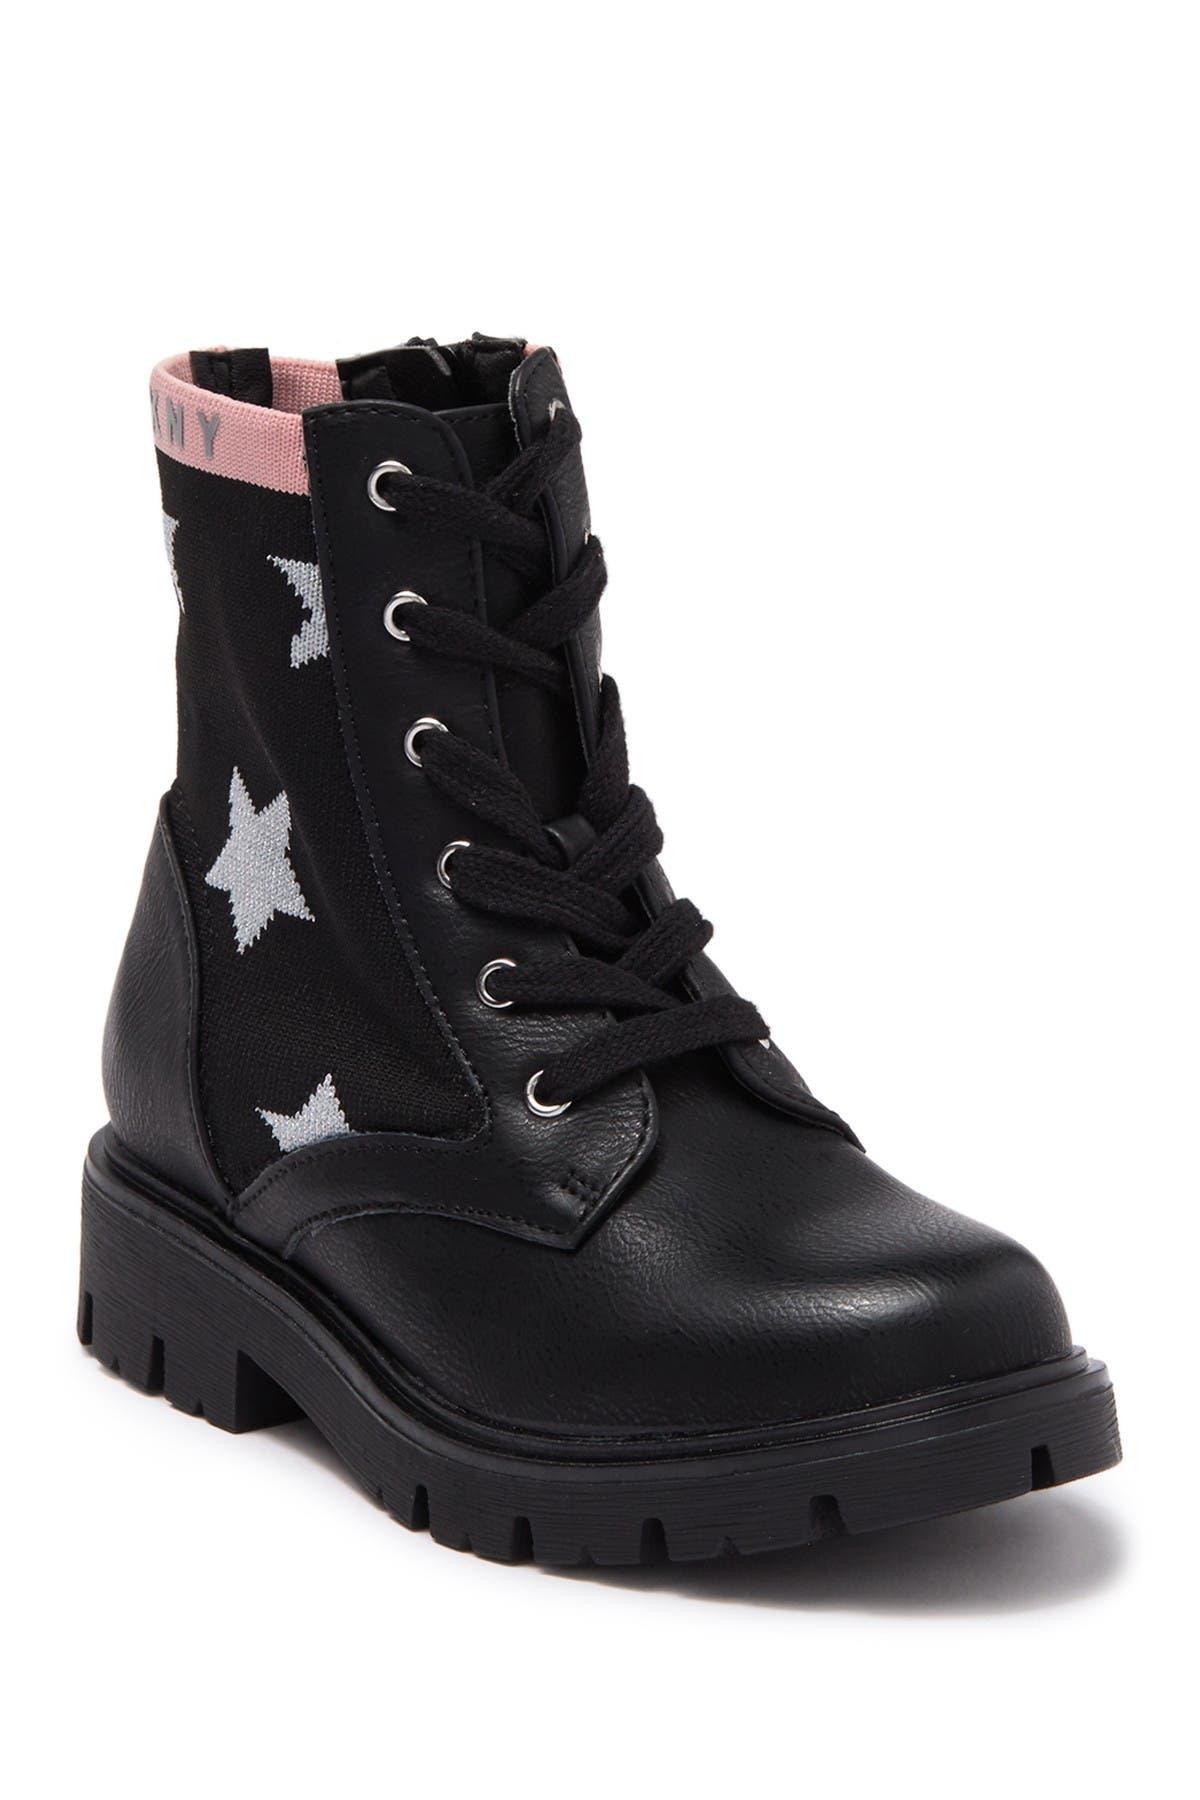 Image of DKNY Stassi Star Boot